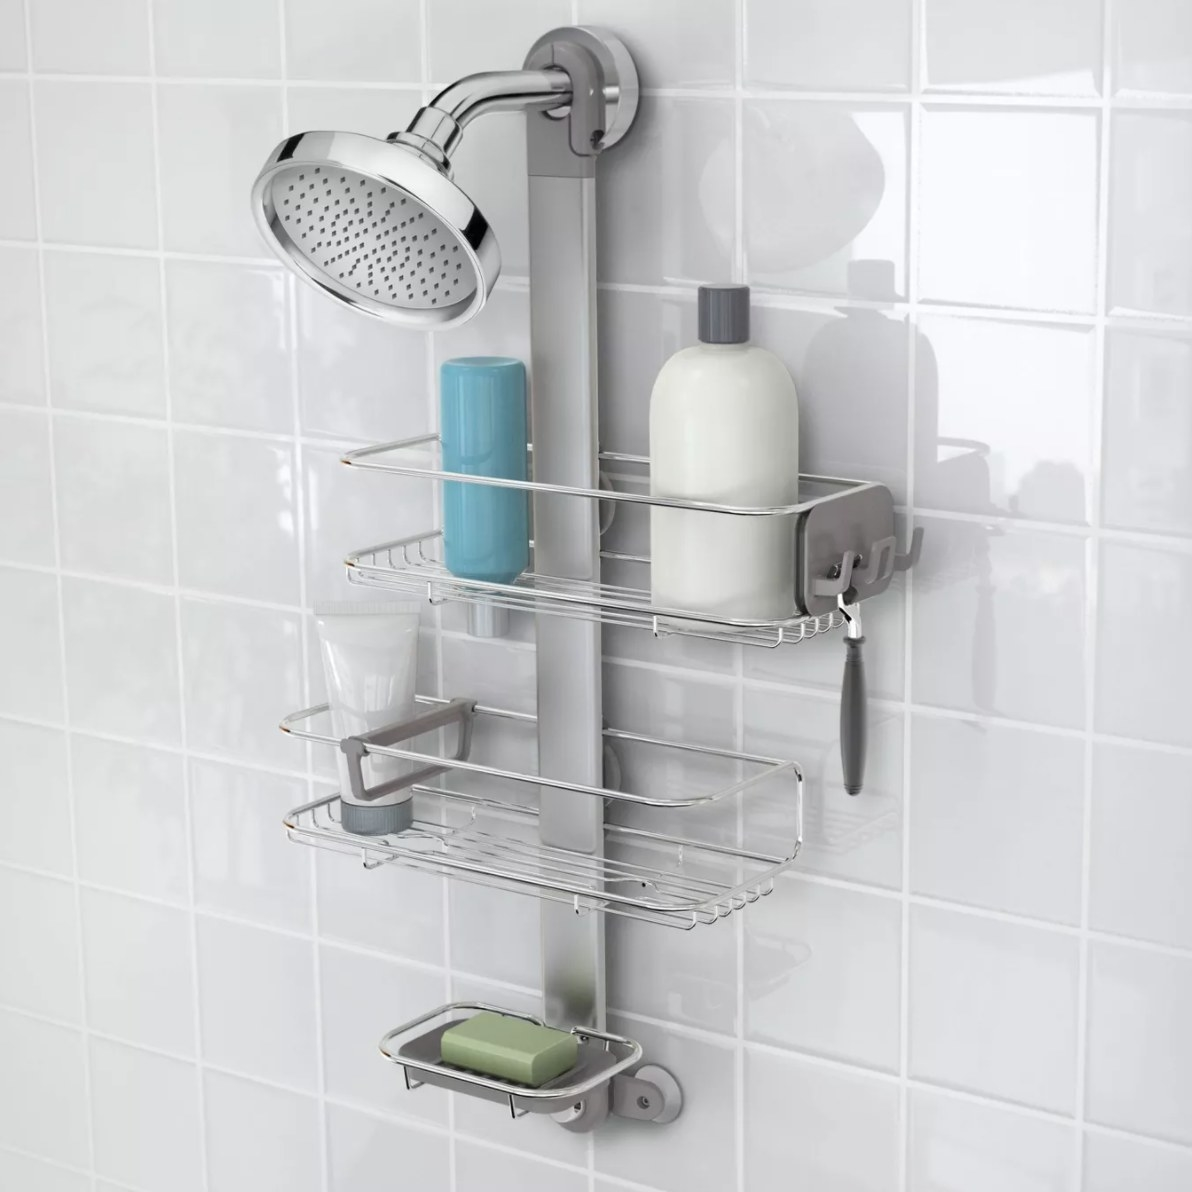 The shower caddy